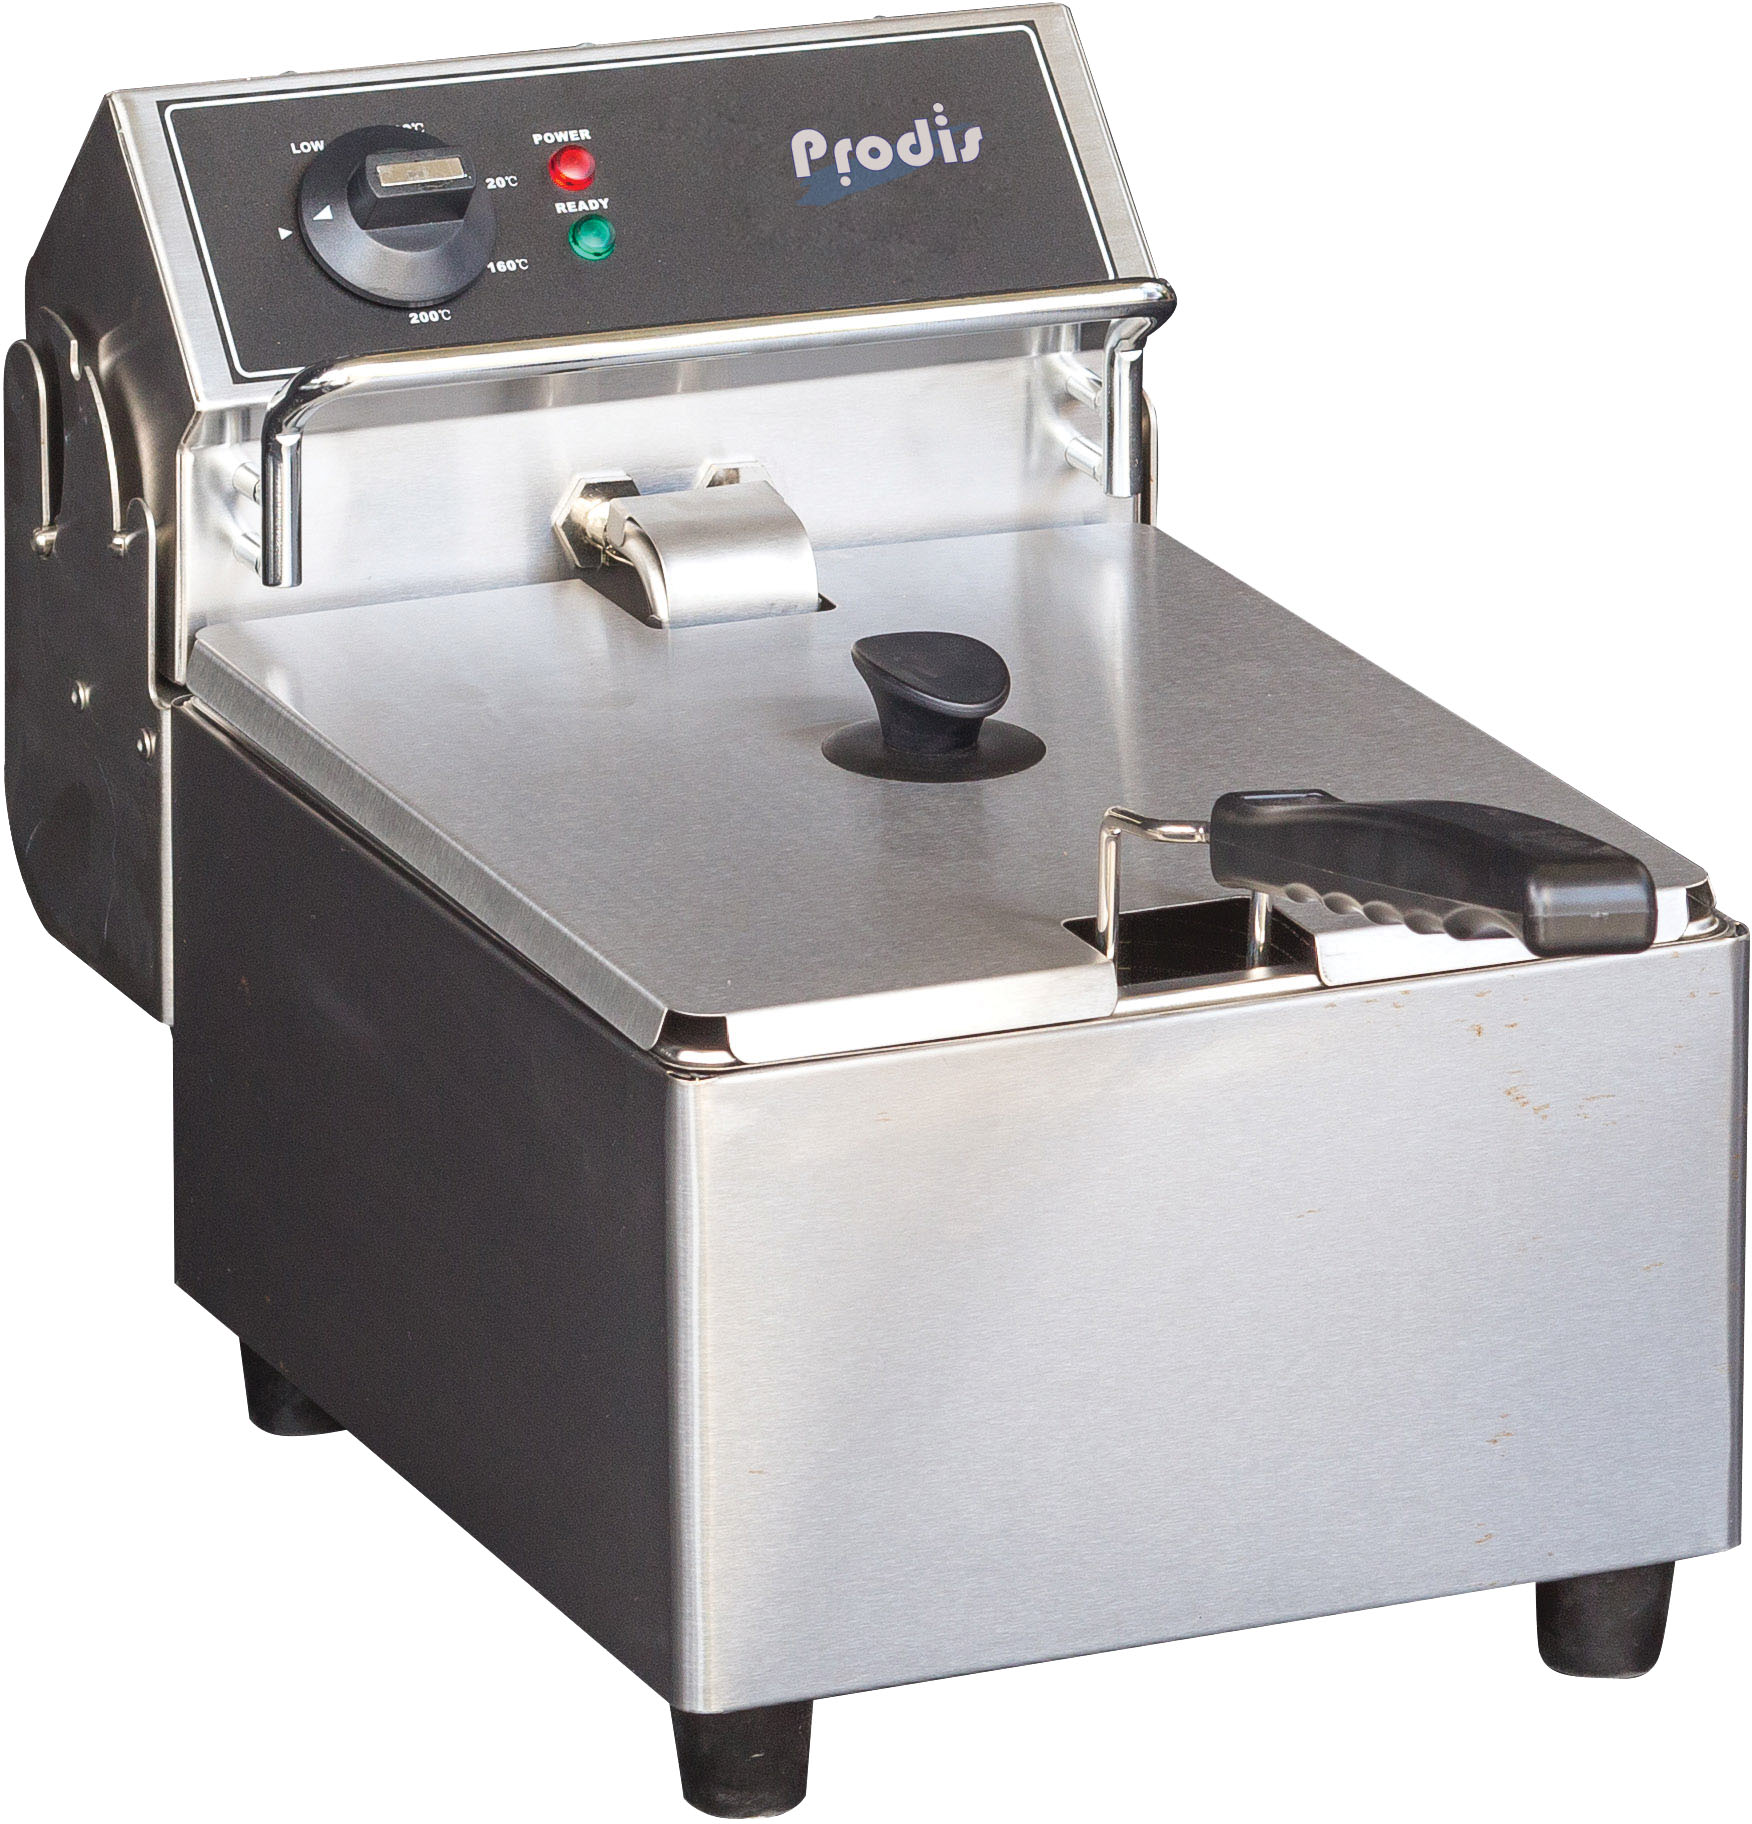 Prodis FDF7, 7 Litre Countertop Electric Fryer